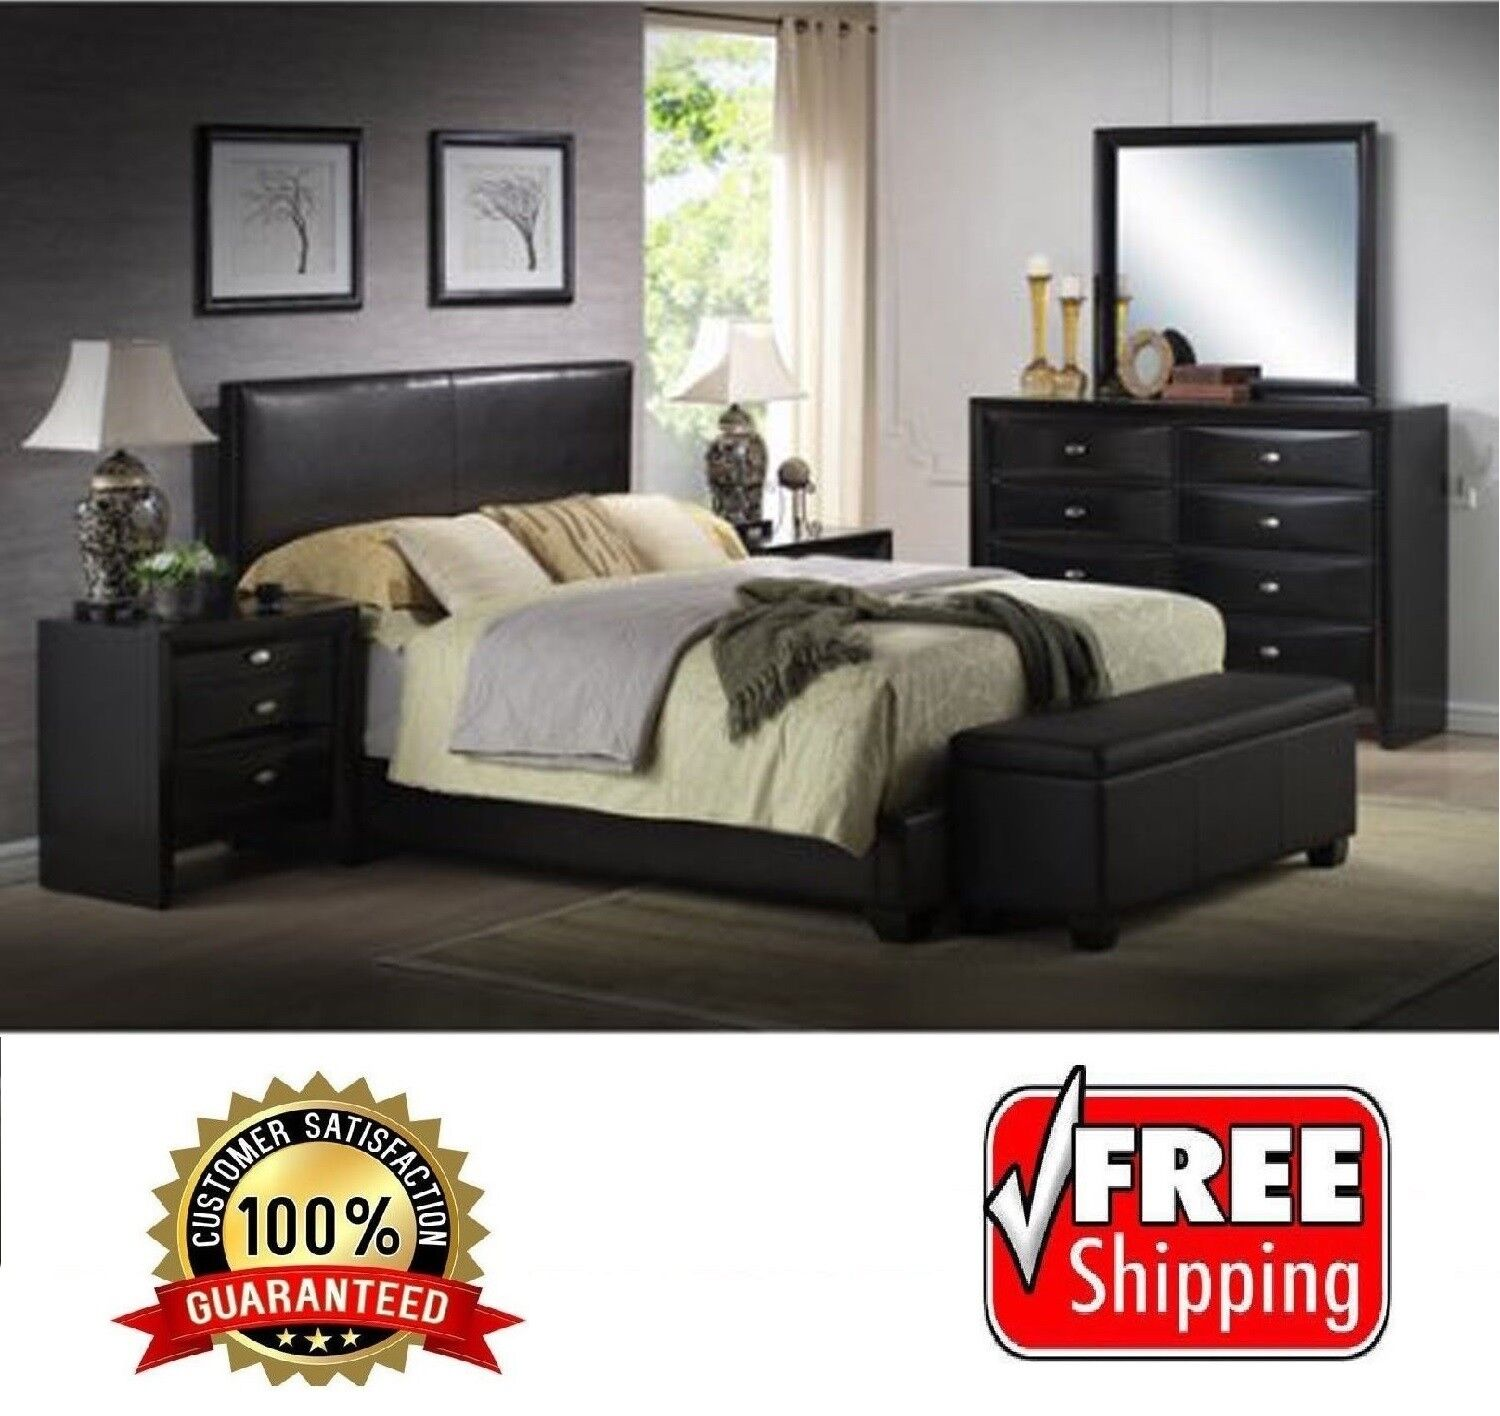 Queen Size Faux Leather Platform Bed Frame Slats Upholstered